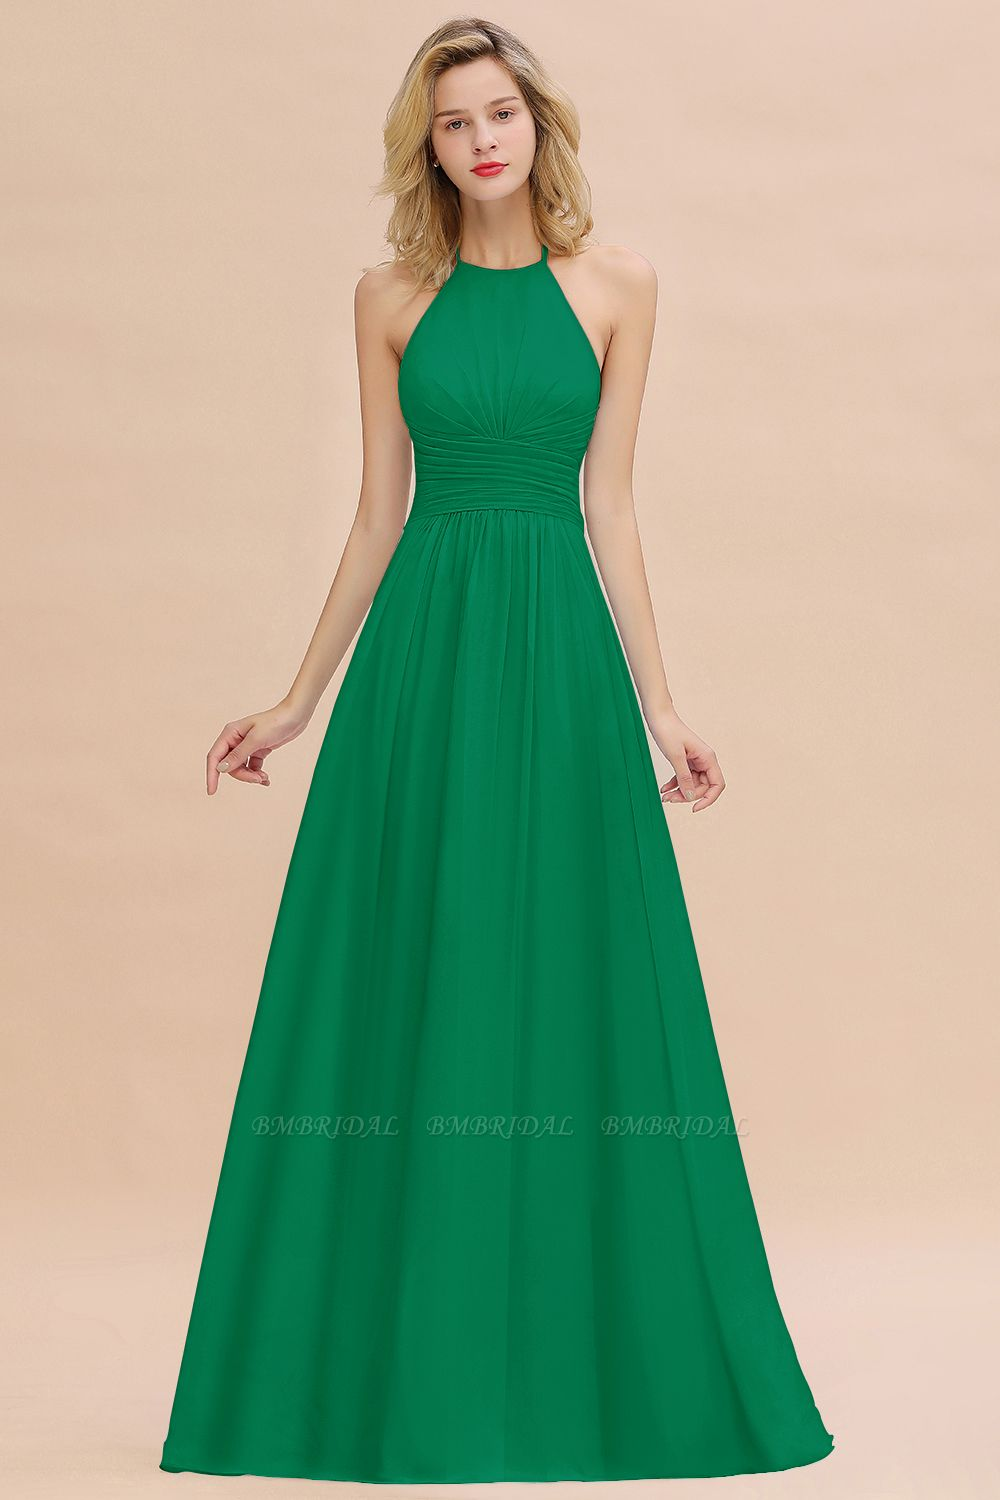 Glamorous Halter Backless Long Affordable Bridesmaid Dresses with Ruffle